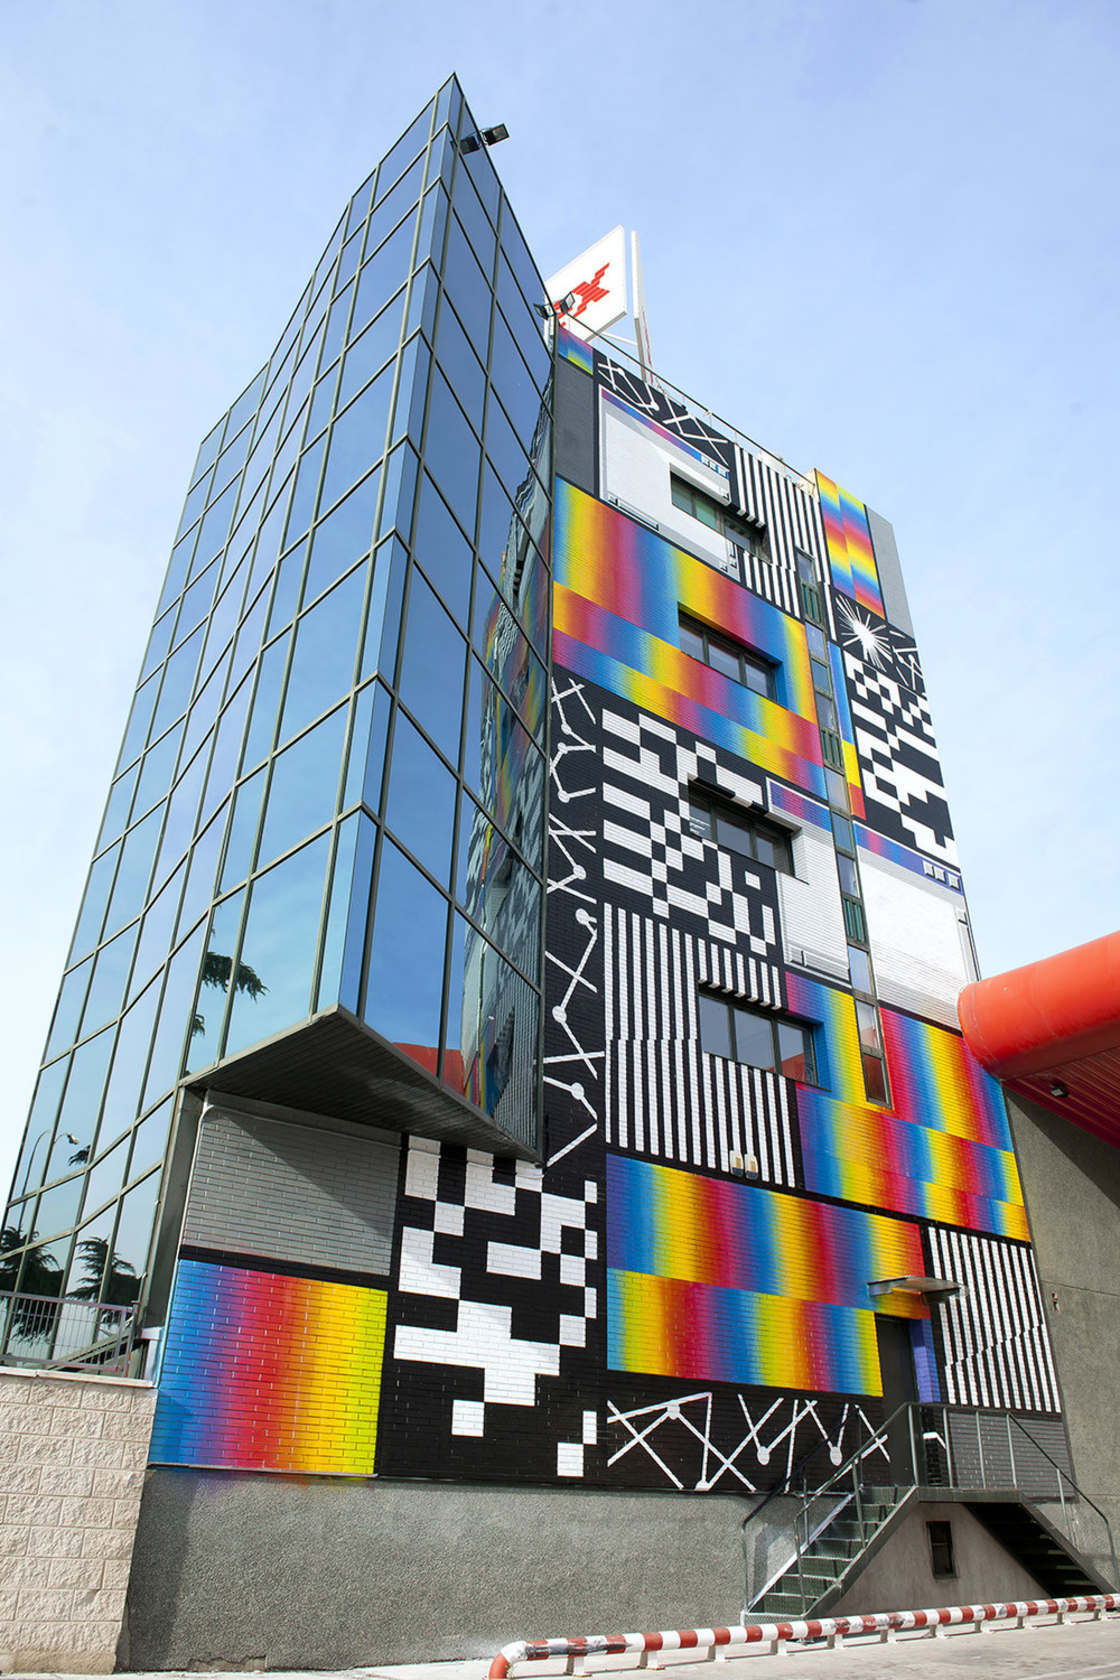 Glitch Art - The latest street art creations by Felipe Pantone